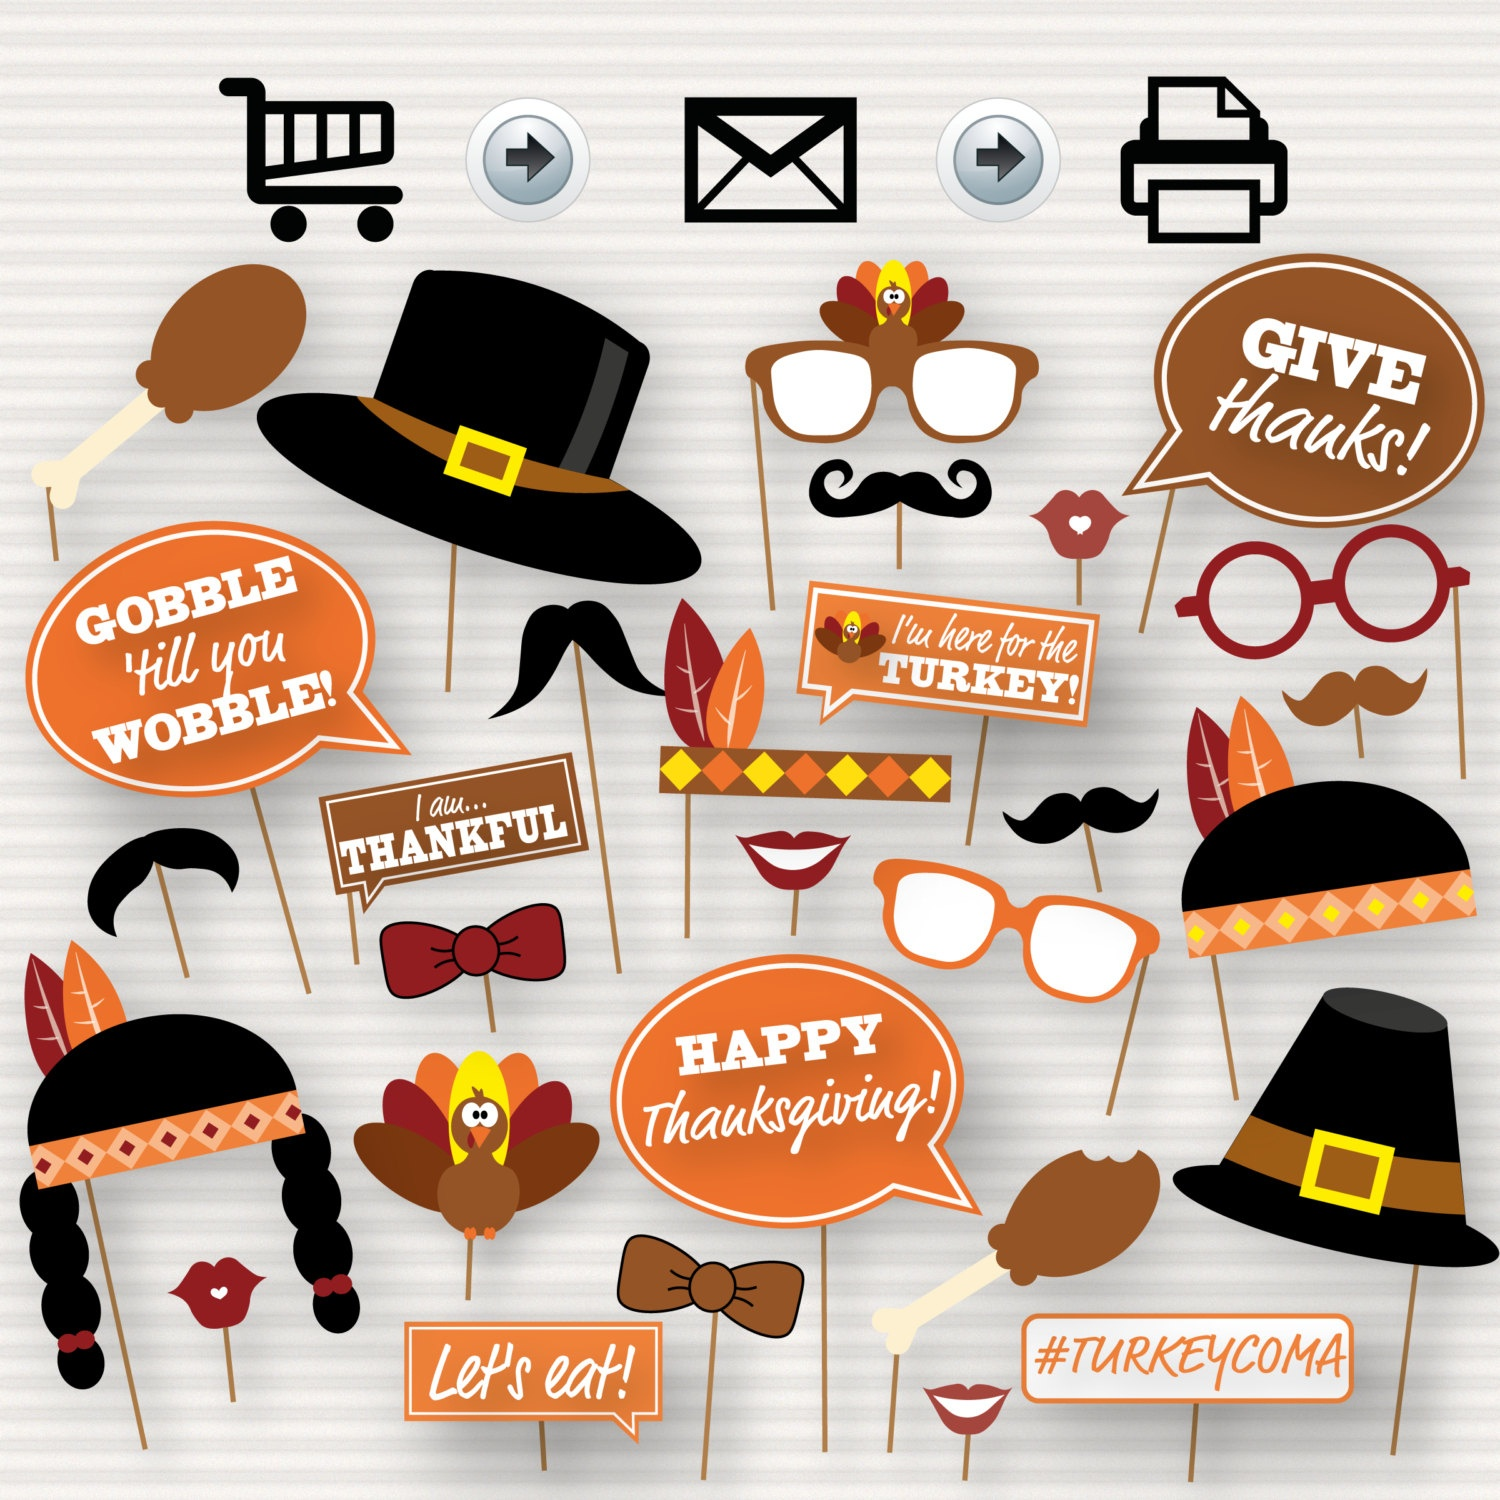 Thanksgiving Party Printable Photo Booth Props Glasses | Etsy - Free Printable Thanksgiving Photo Props